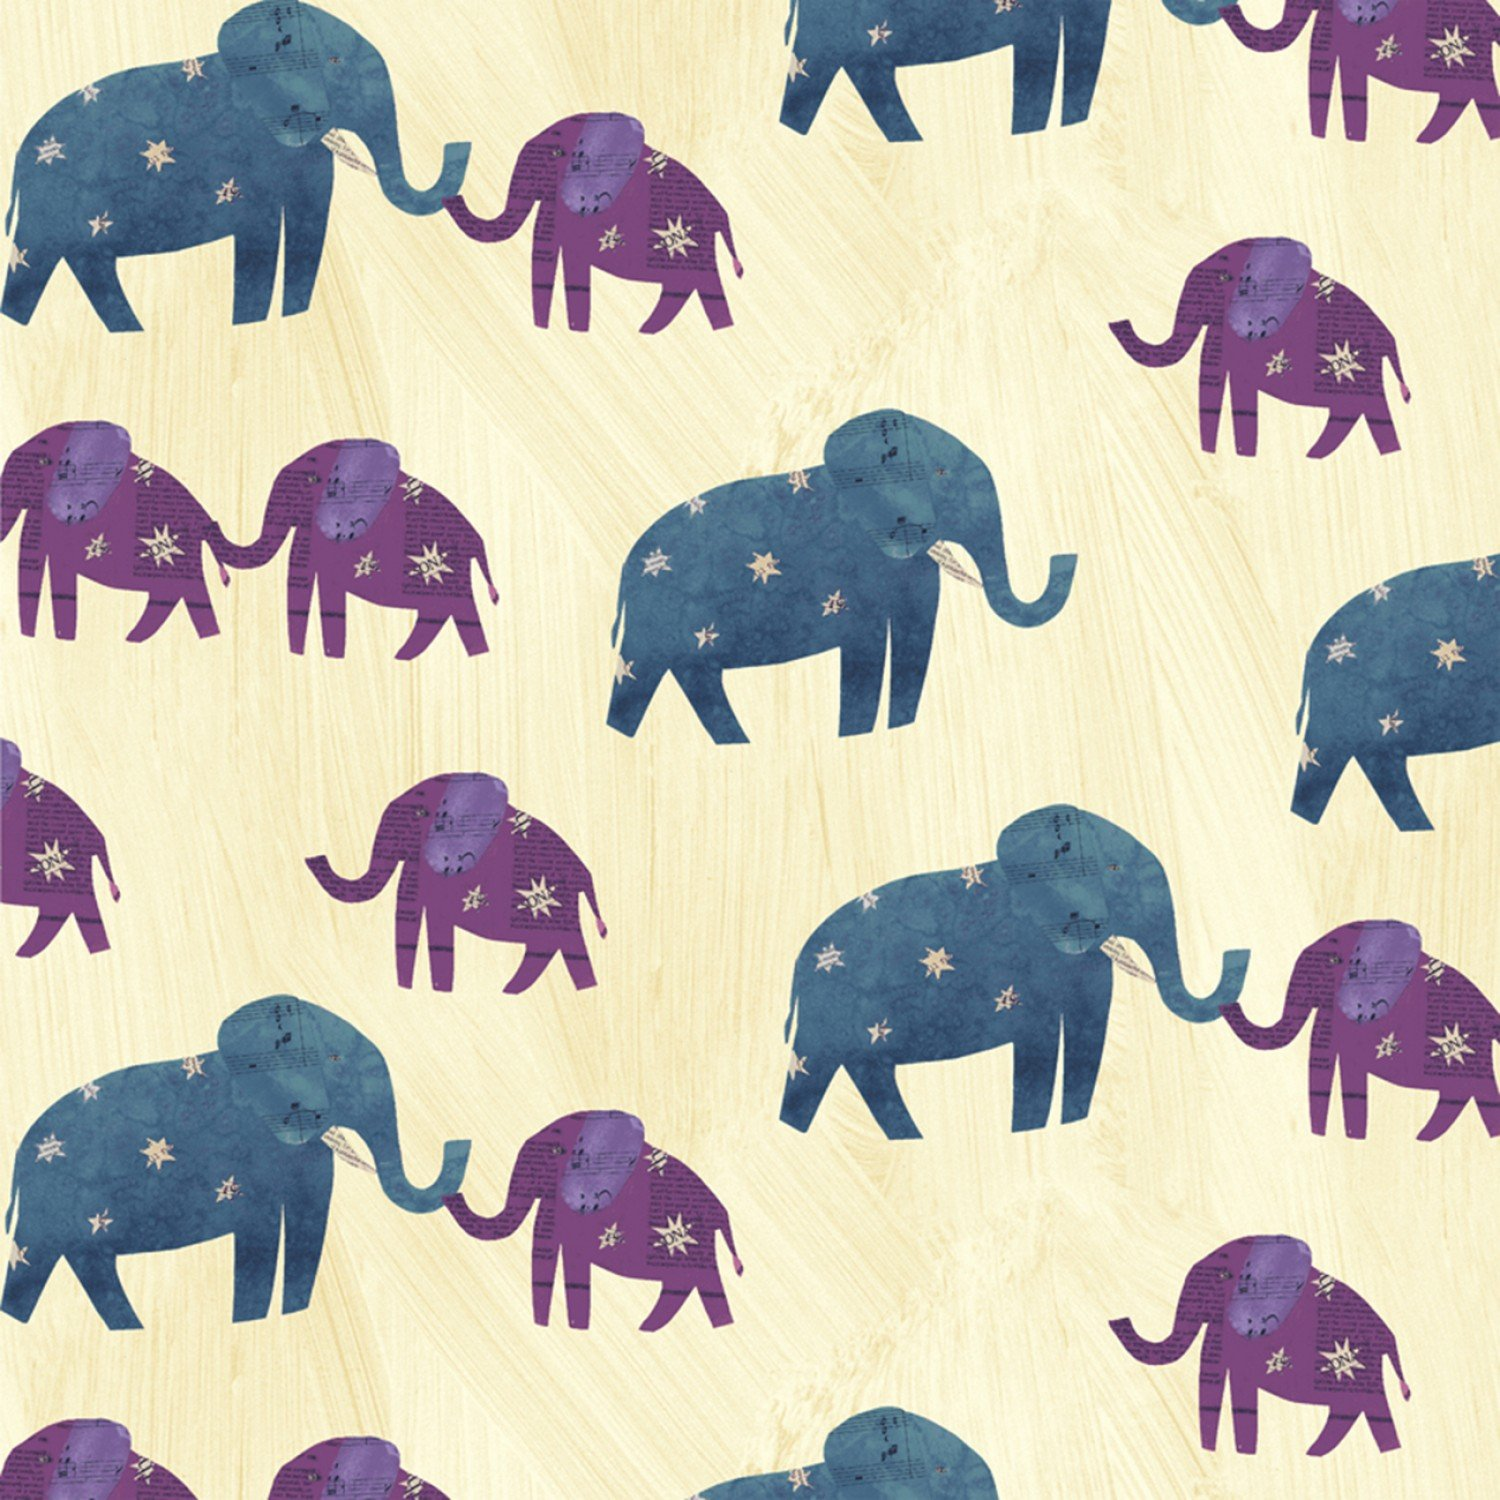 Windham Fabrics- -Wish 51740-1 Old Paper - Starry Elephants NSKU-34023